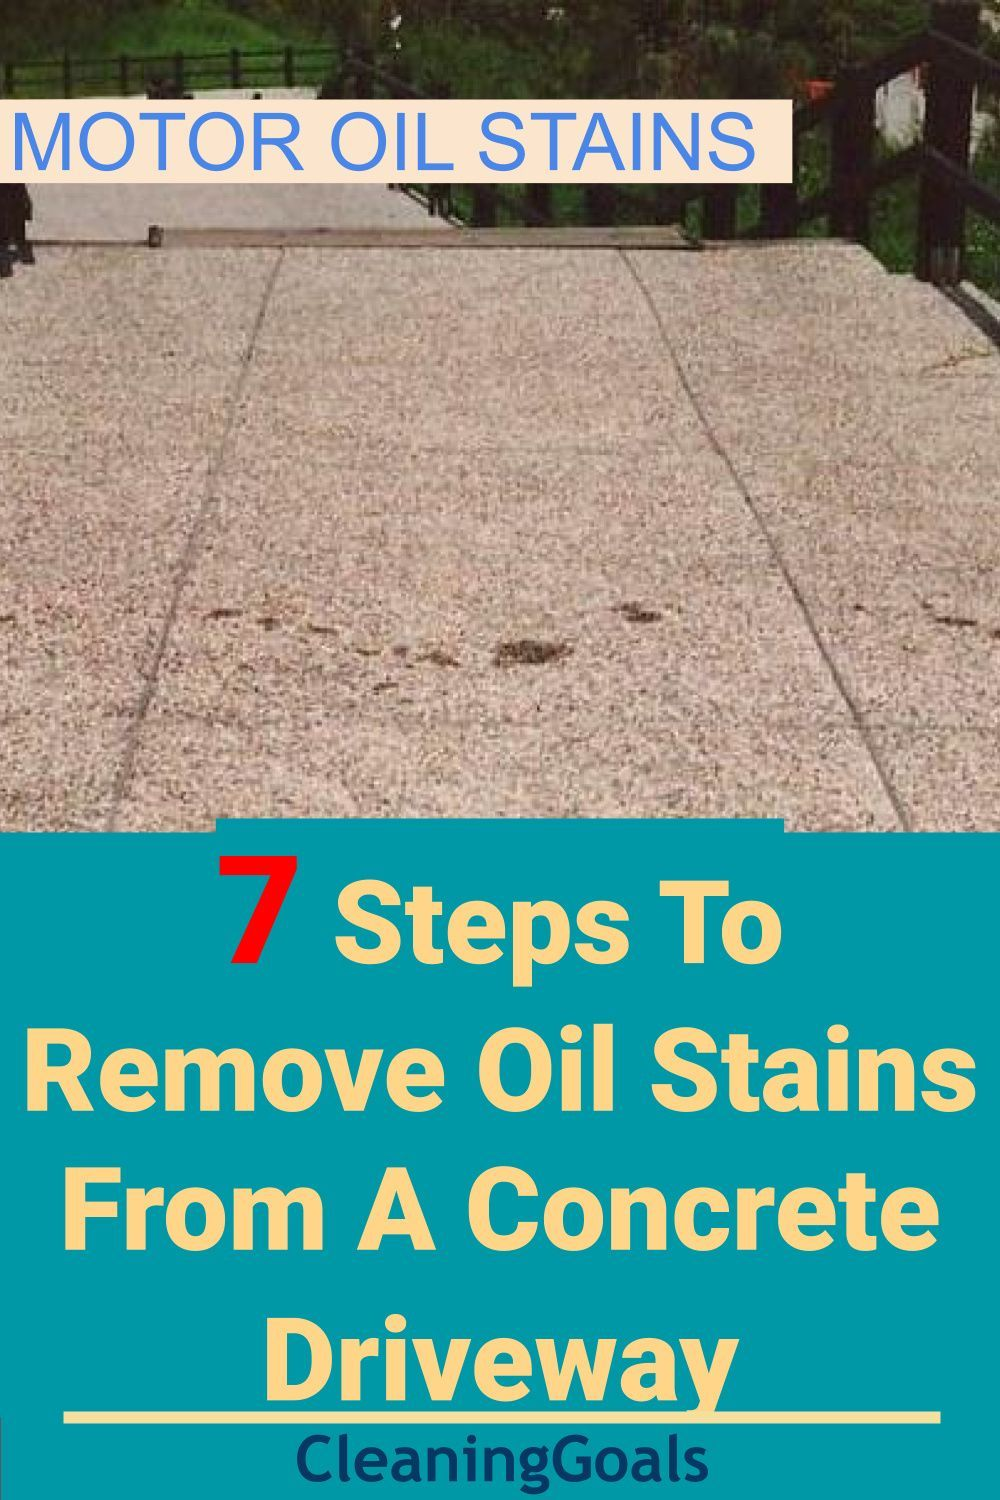 How To Remove Old Oil Stains From A Concrete Driveway Cleaning Concrete Driveway Concrete Driveways Remove Oil Stains